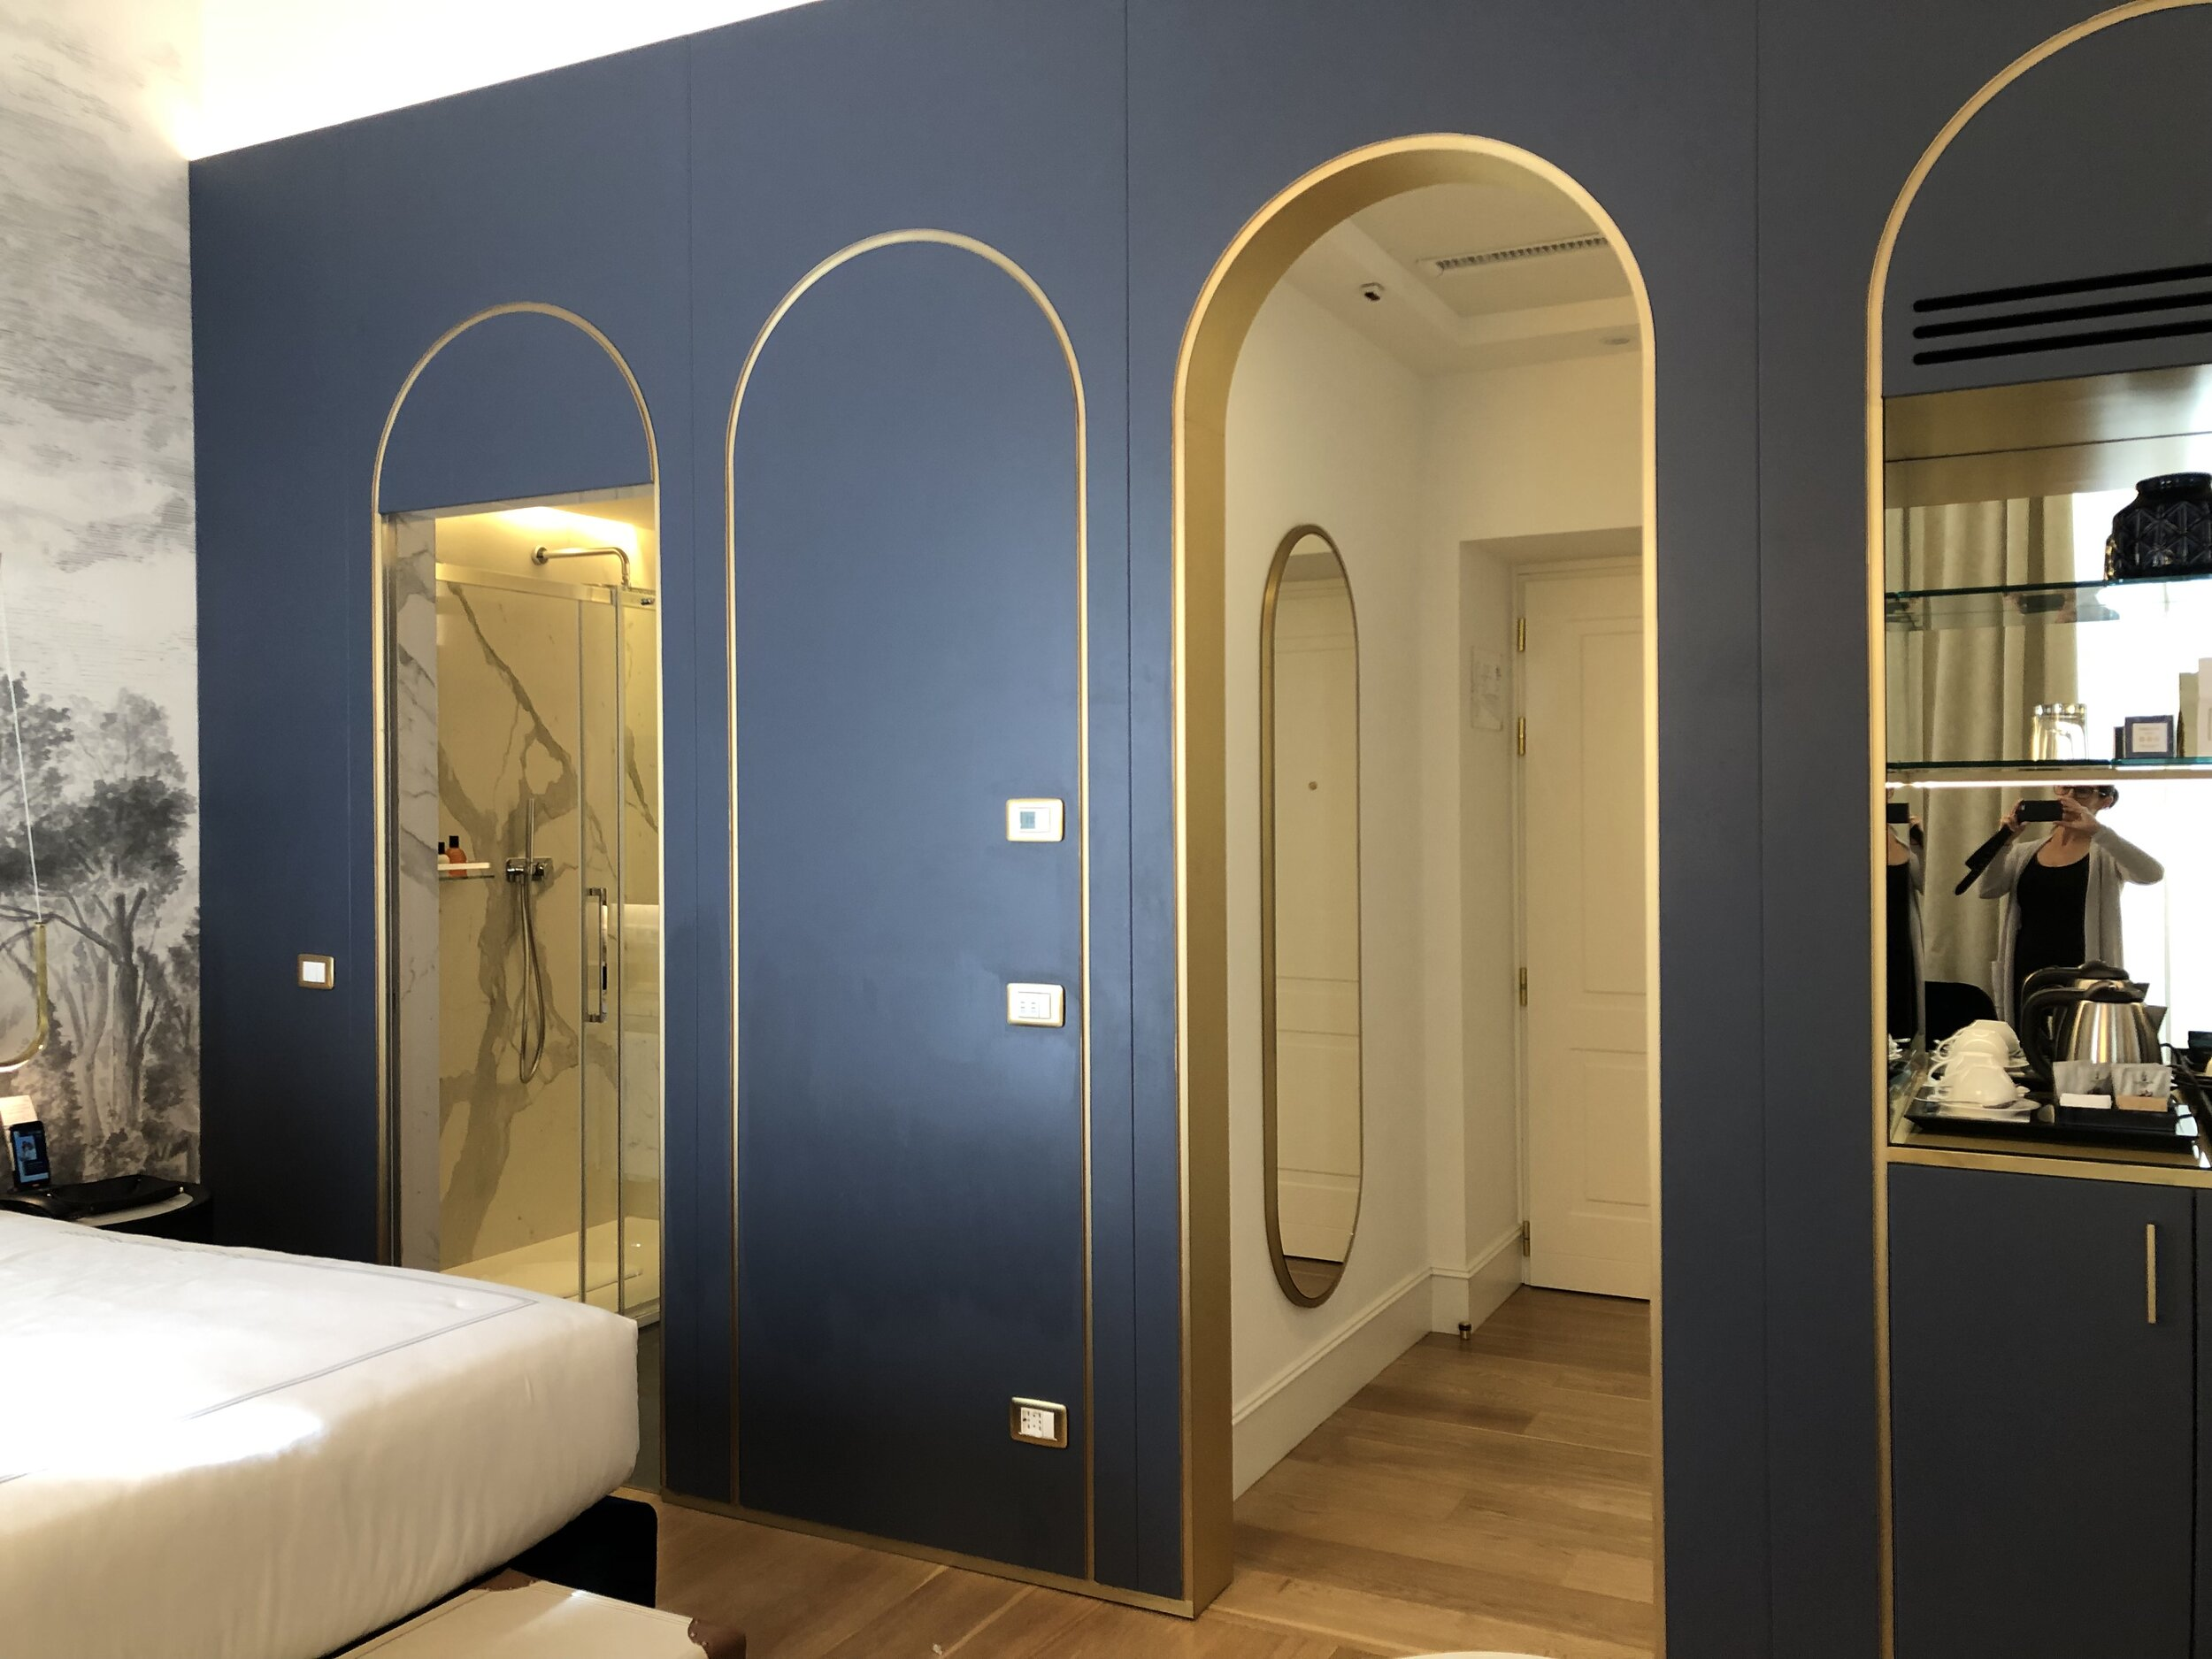 Probably the best color of blue we have ever seen was introduced on the wall separating the sleeping area from the utilities. You can see the gold accents better here.